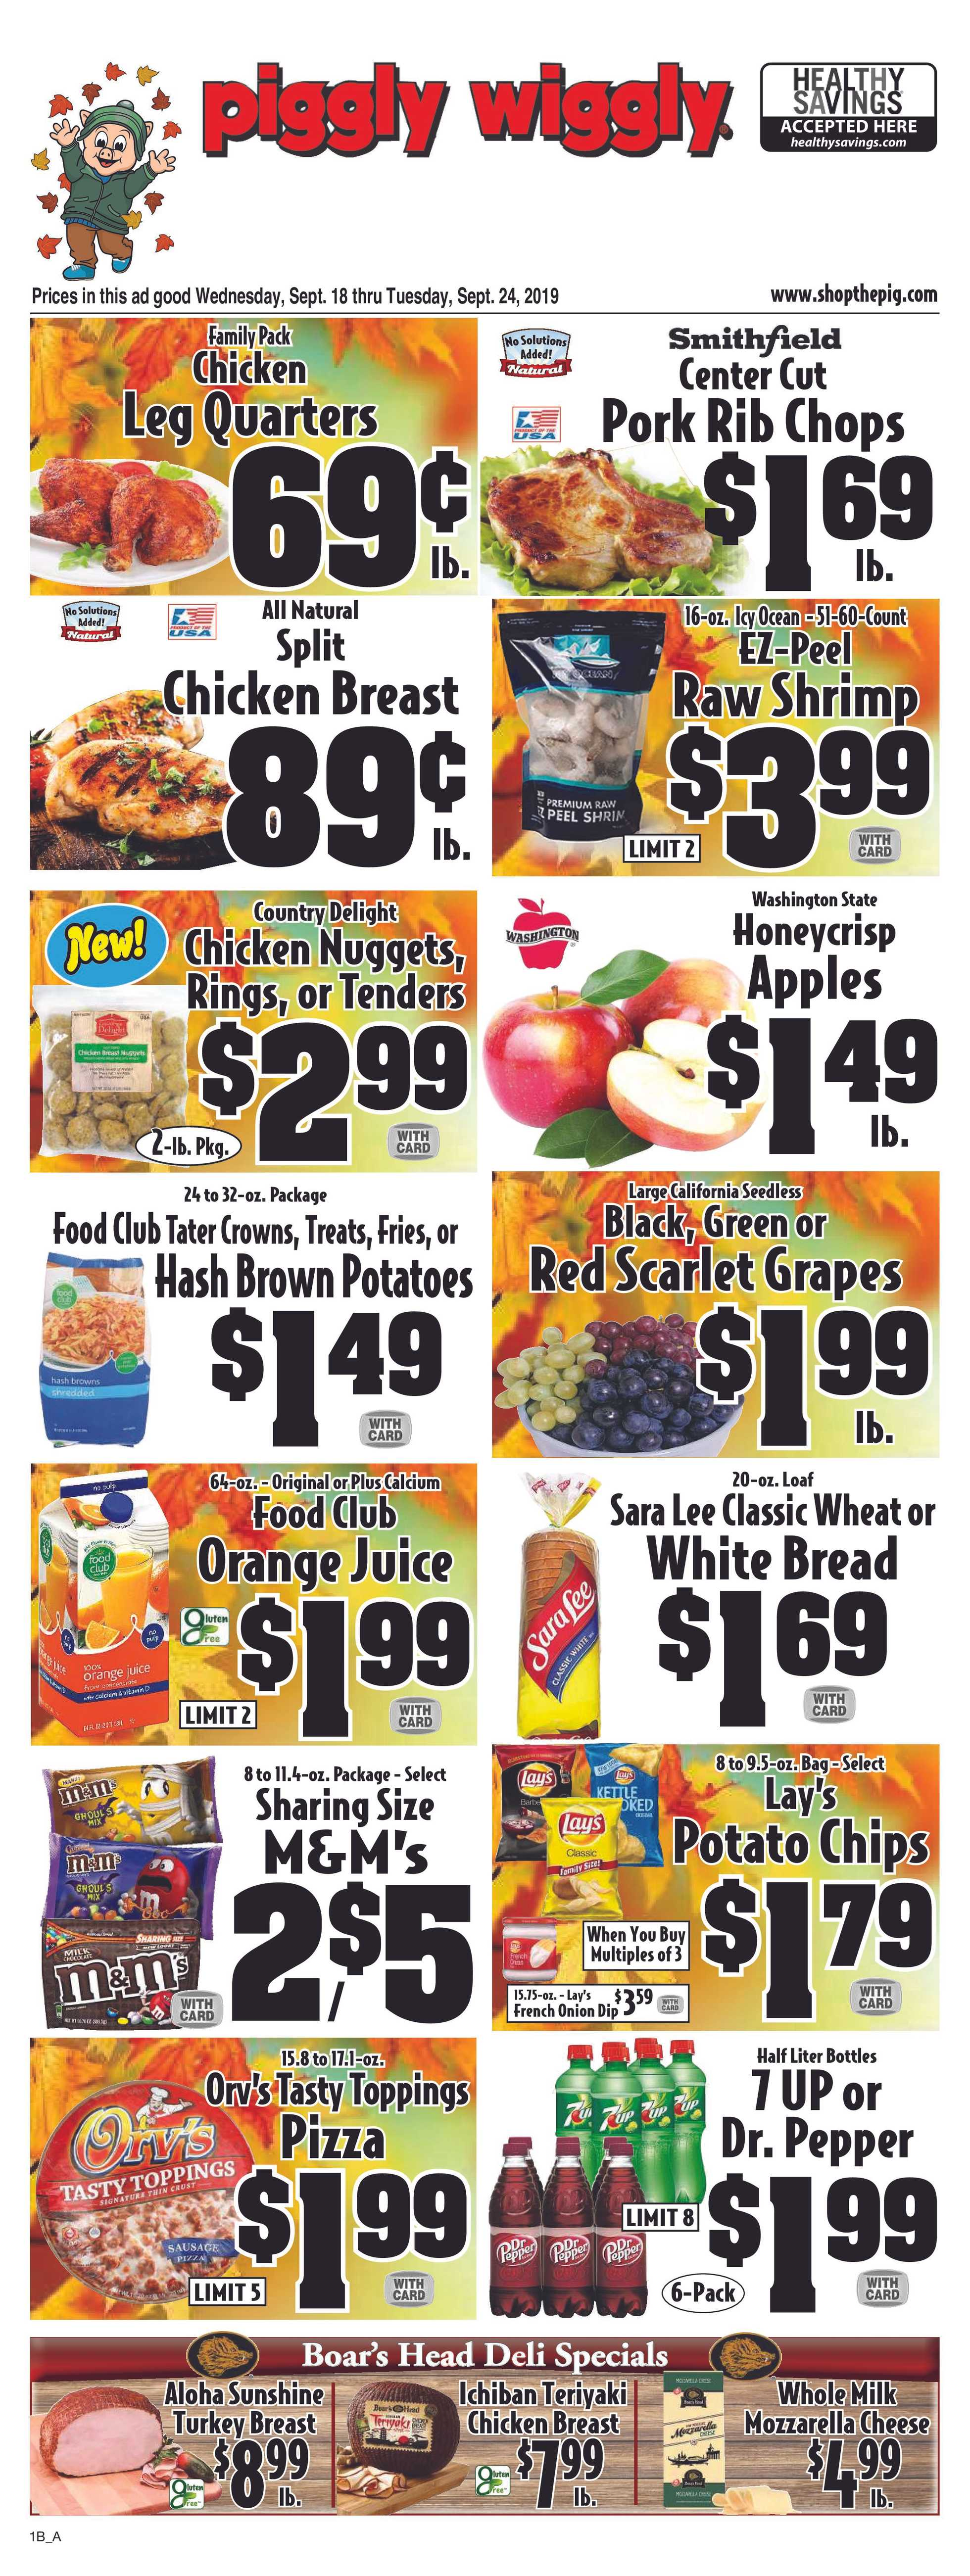 Piggly Wiggly - deals are valid from 09/18/19 to 09/24/19 - page 1.